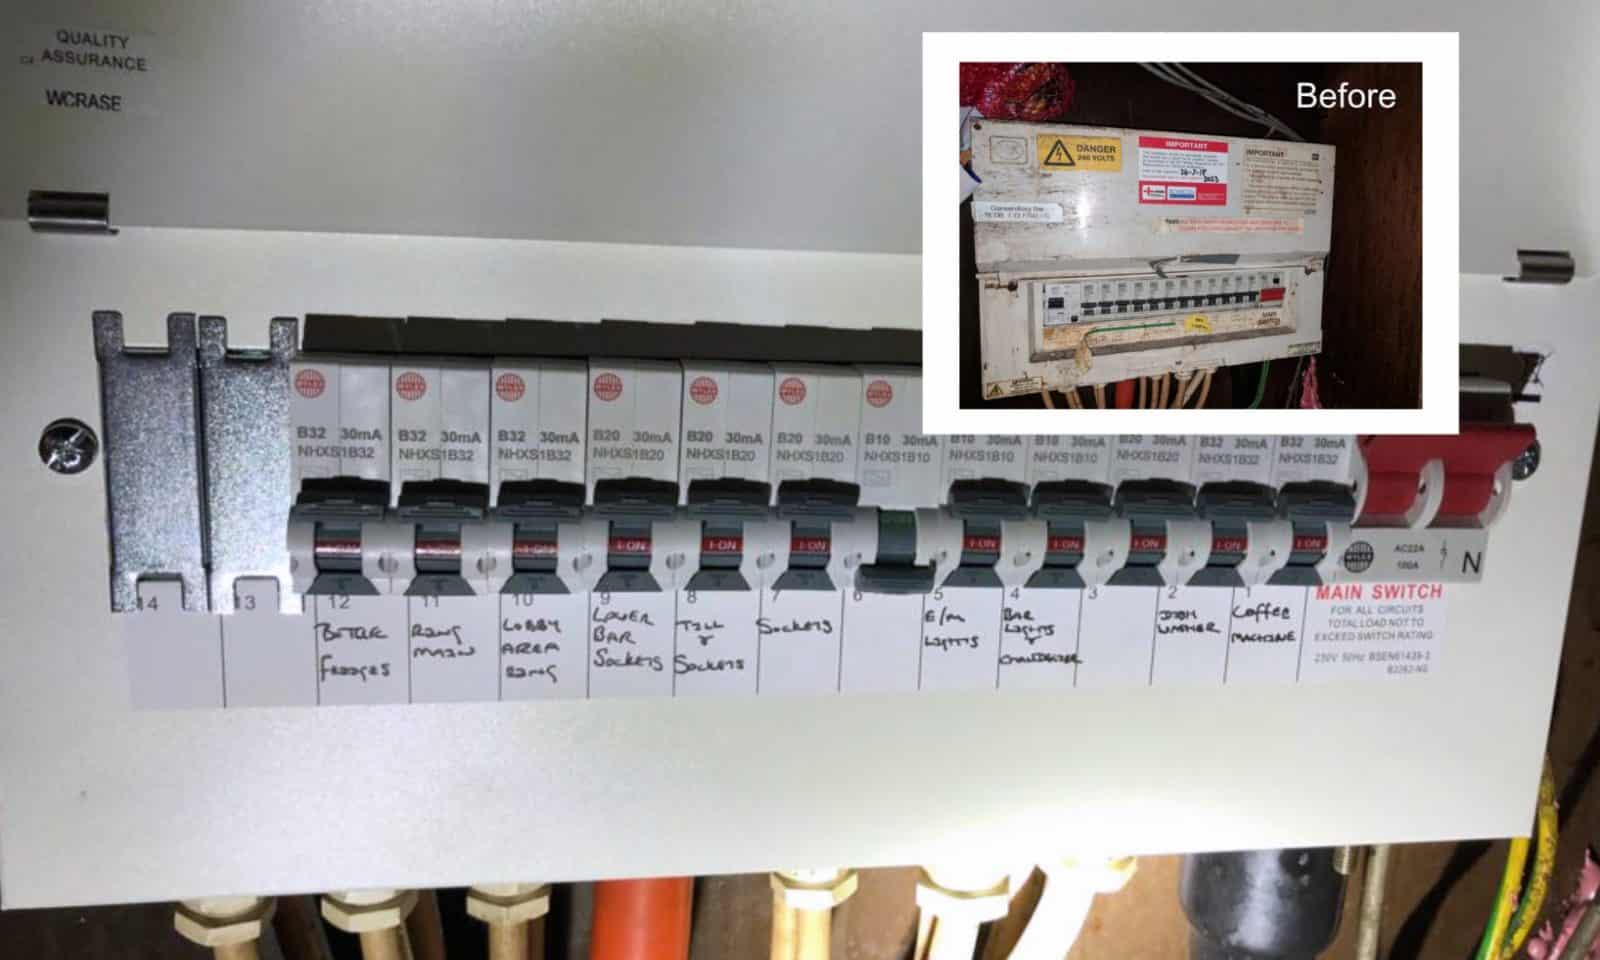 fuse board before and after